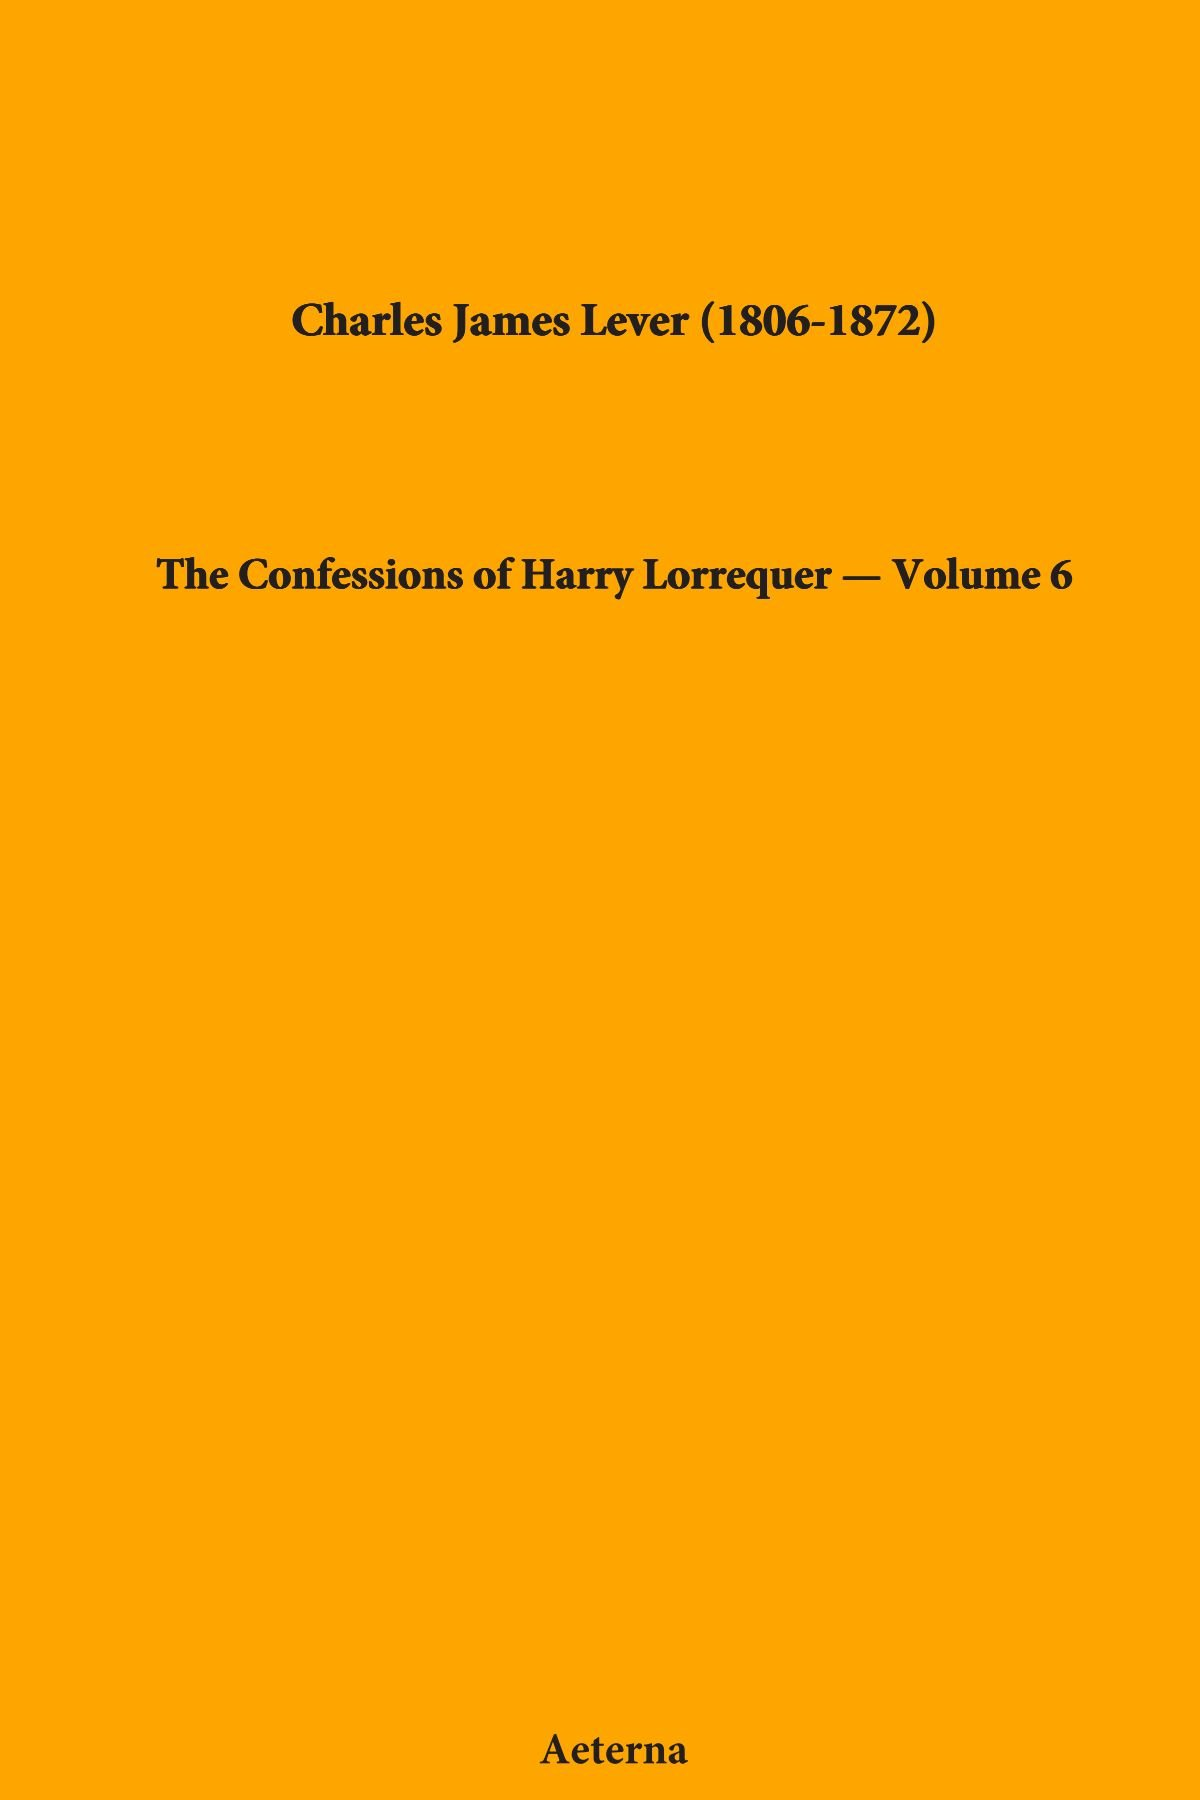 The Confessions of Harry Lorrequer — Volume 6 pdf